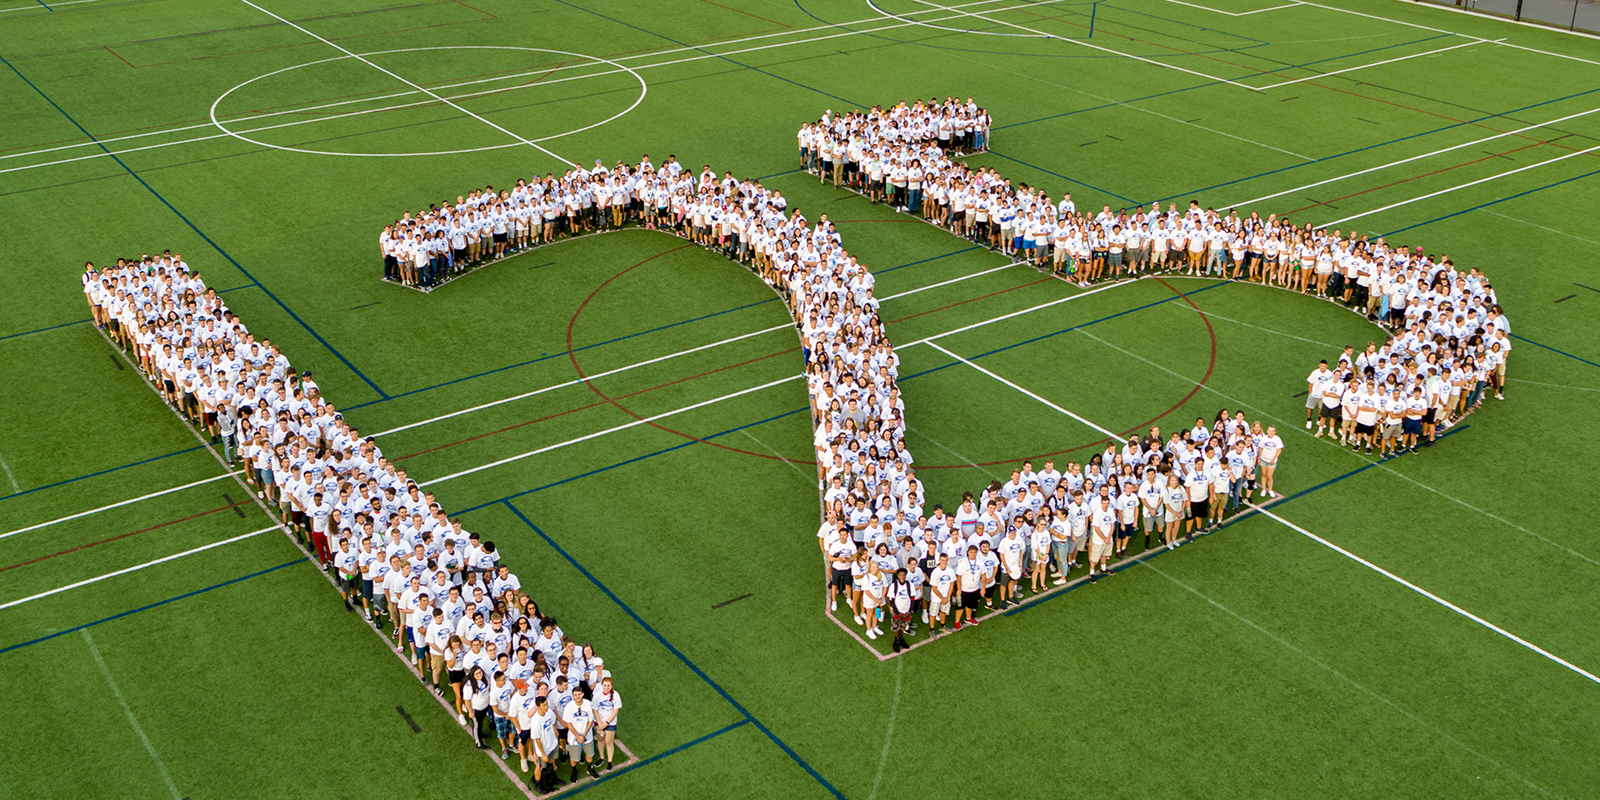 Students stand in white UML t-shirts within a human 125 on the green Campus Rec Complex field